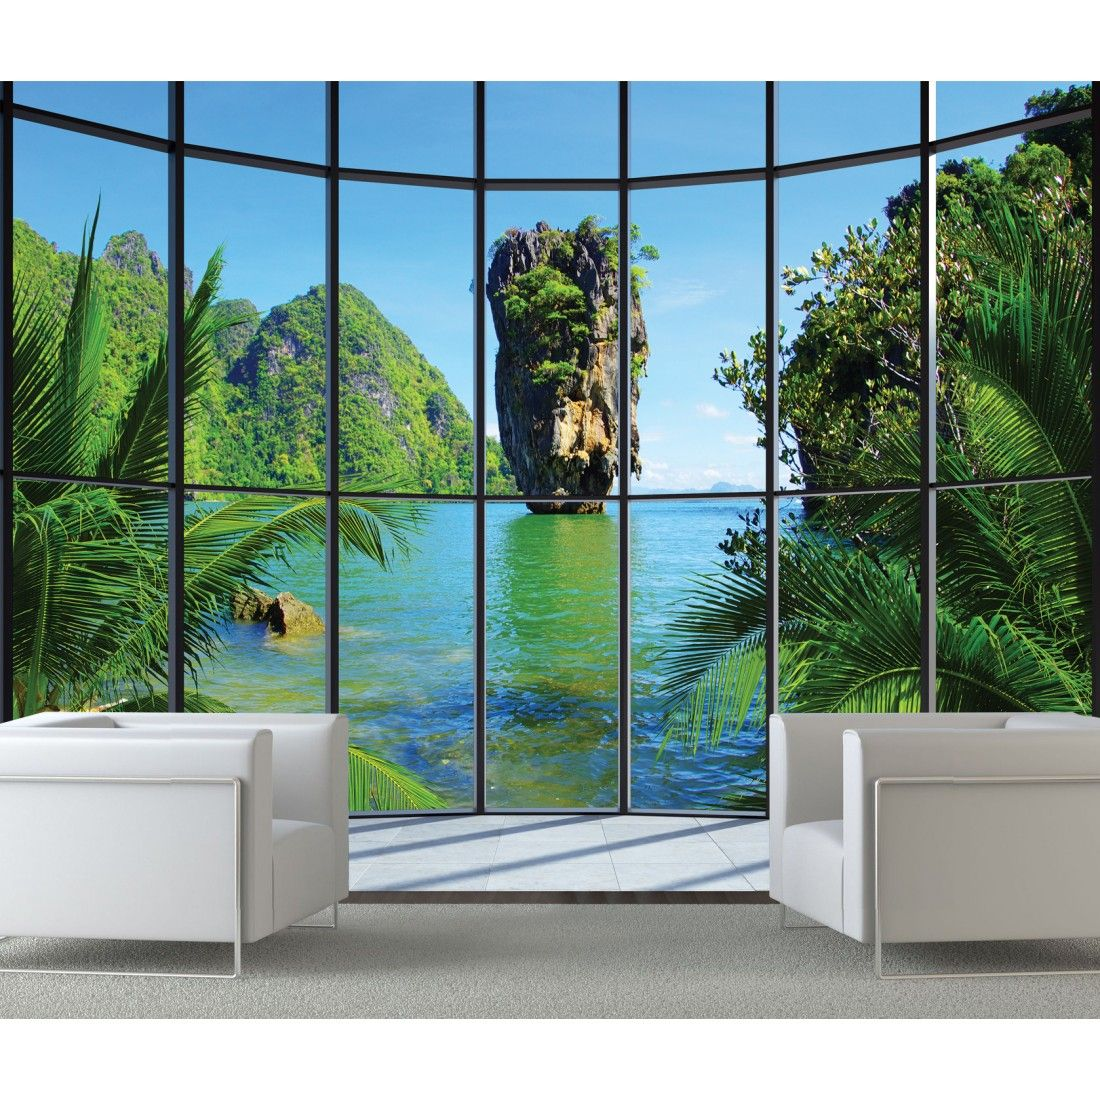 Thailand Window Giant Wall Mural Murals Pinterest Wall Murals